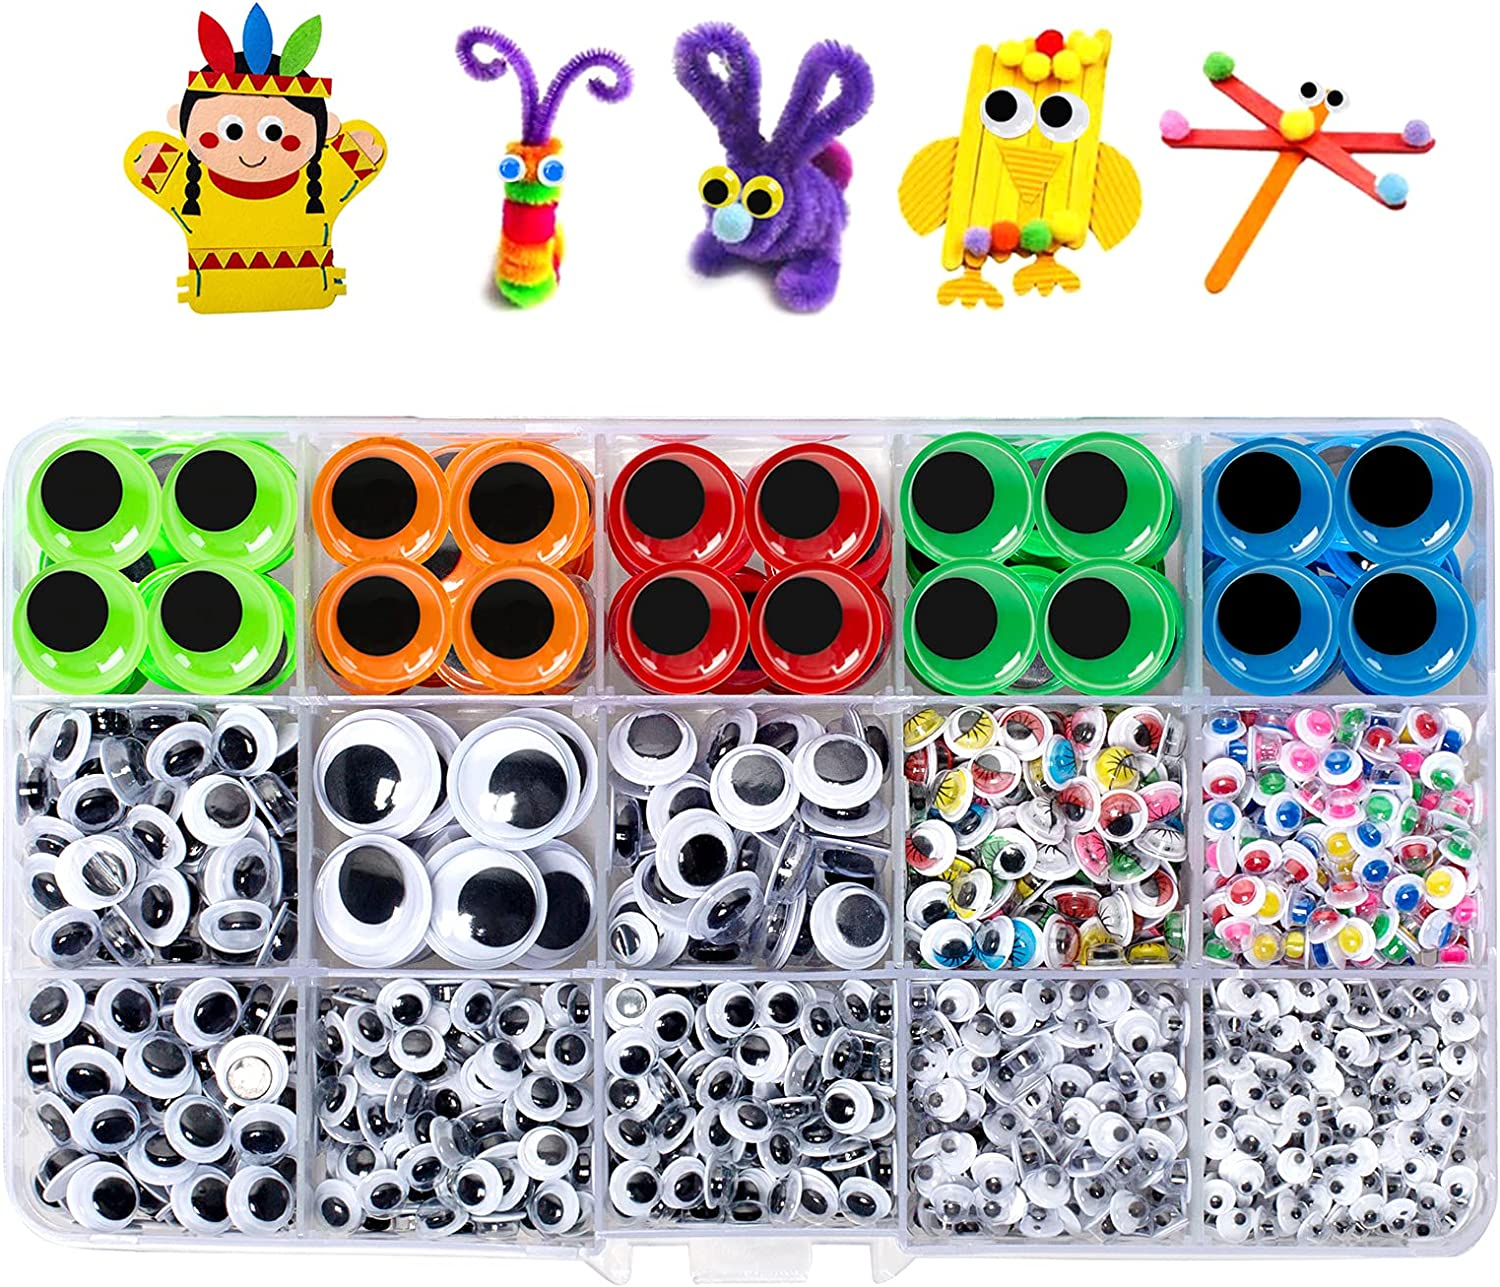 Large-scale sale 1510pcs Googly Eyes Self Adhesive Manufacturer regenerated product Sticker for Craft Wigg Crafts